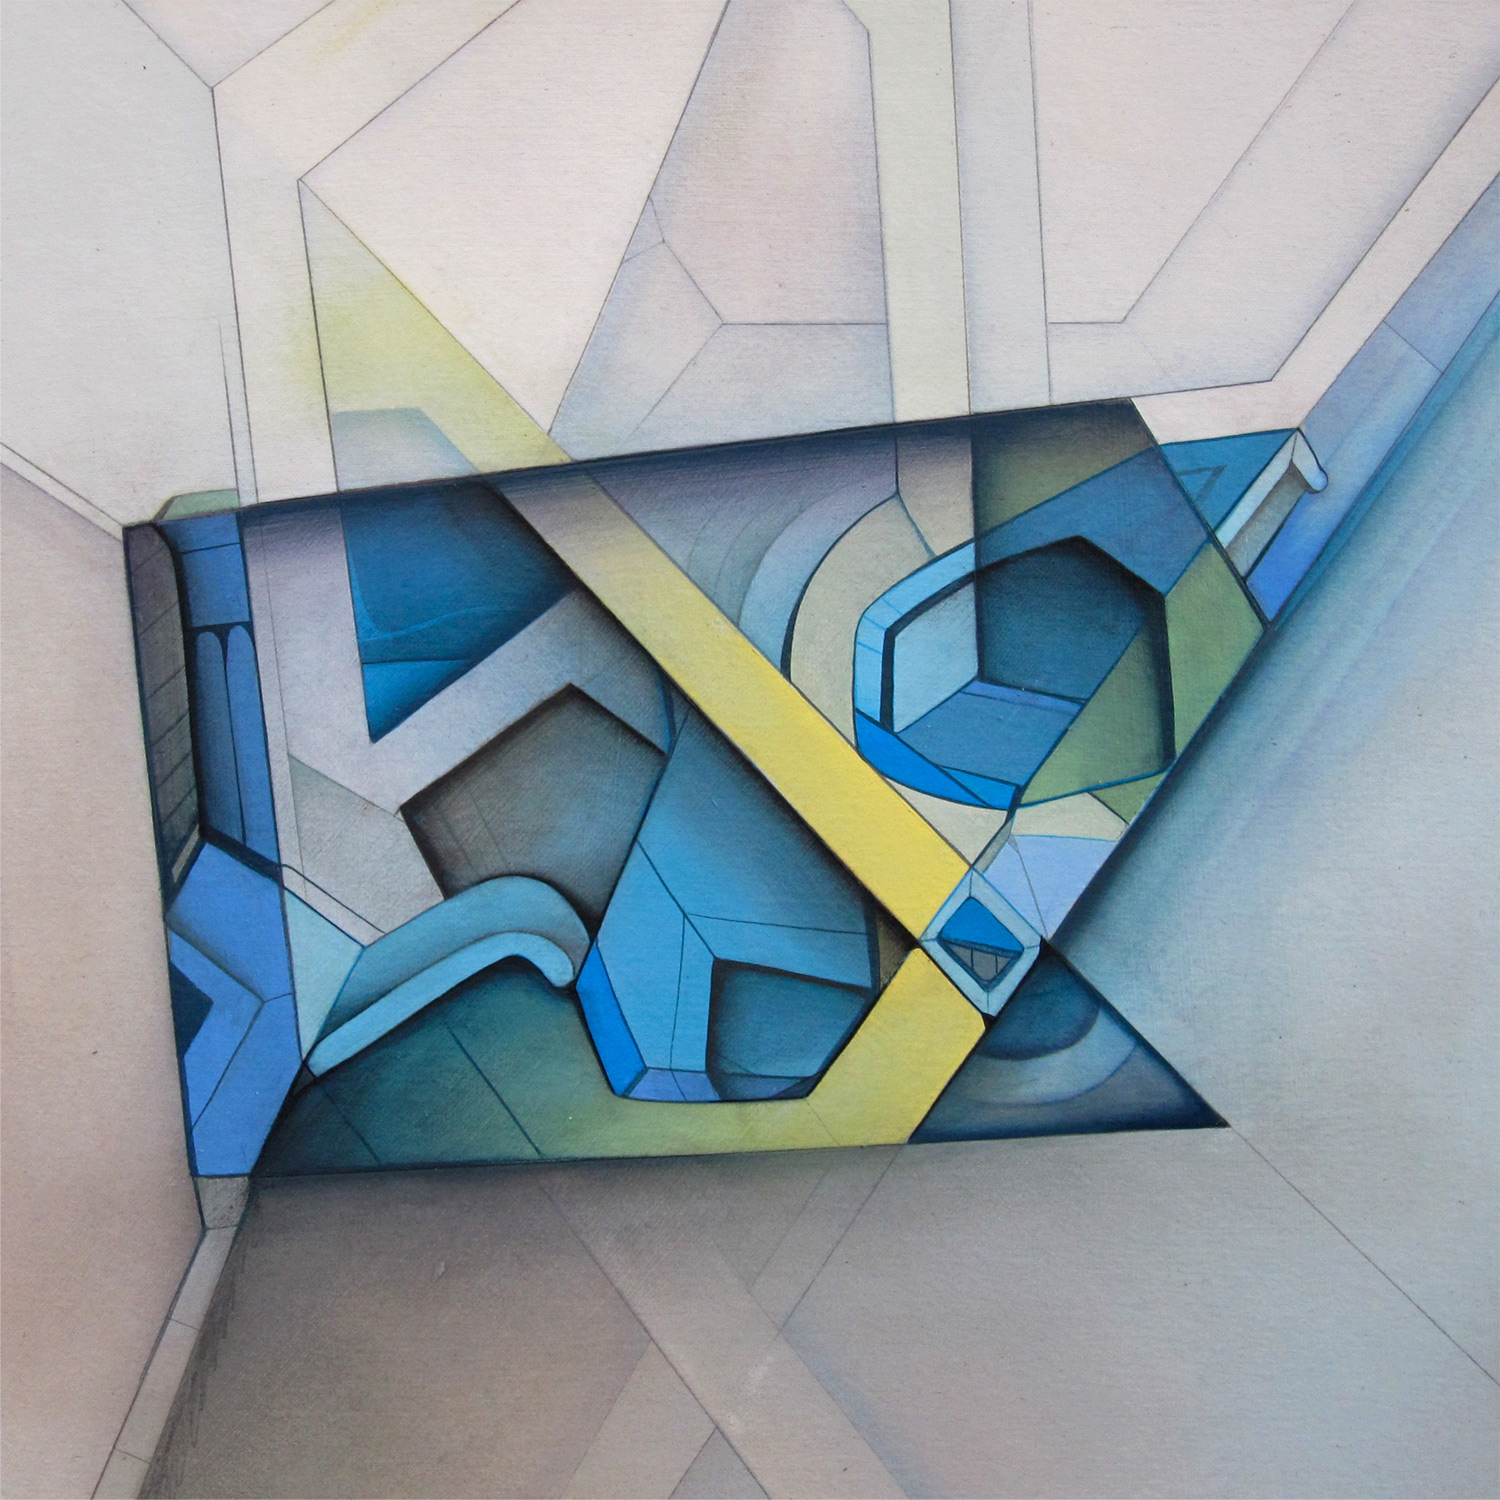 Past Continuous B - Acrylic on Panel 7 in. x 7 in. (2011)